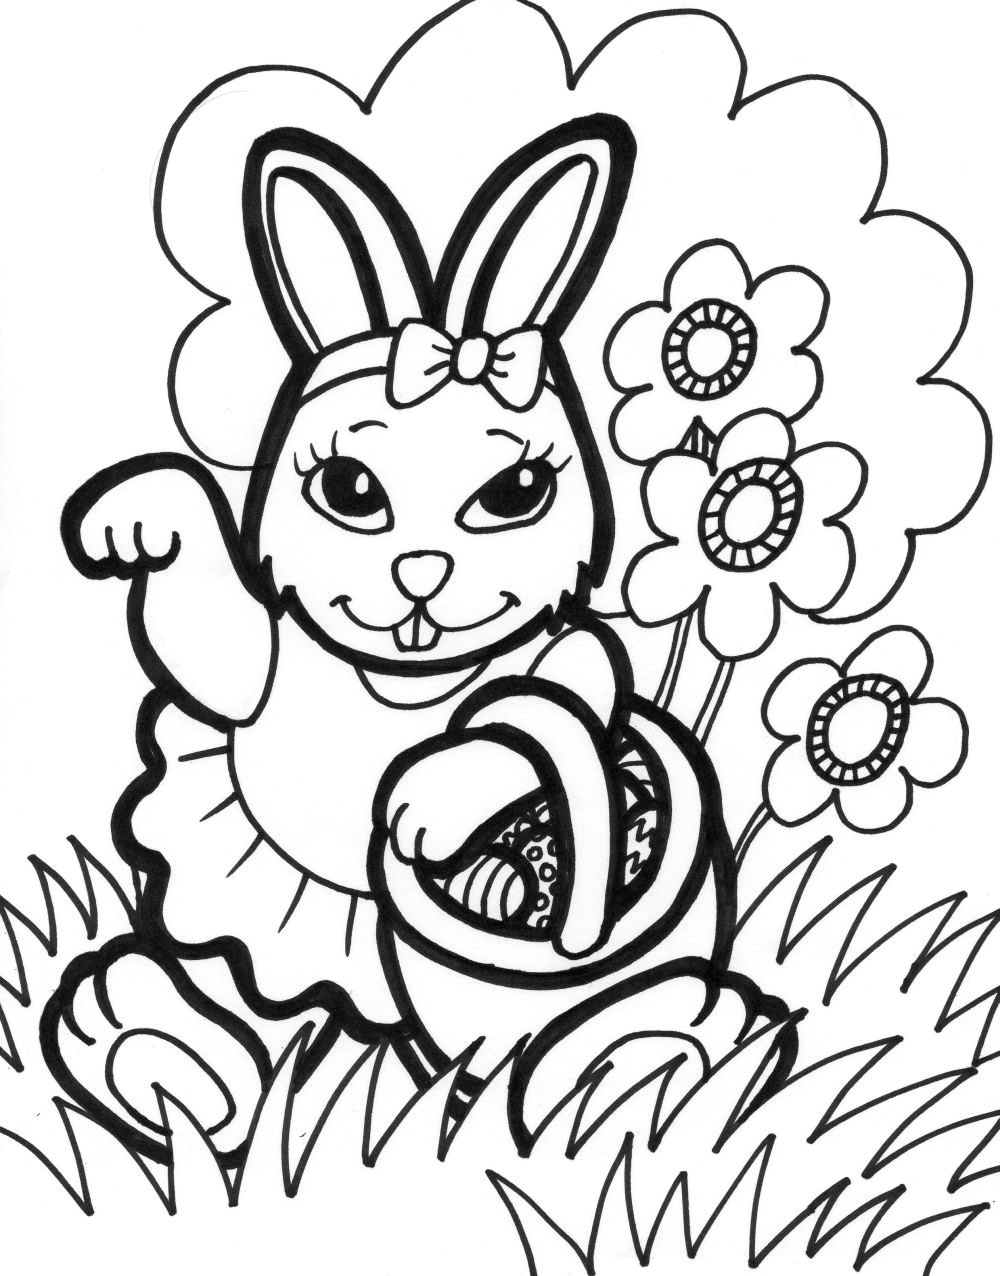 Easter Bunny Clip Art Coloring Pages - ClipArt Best